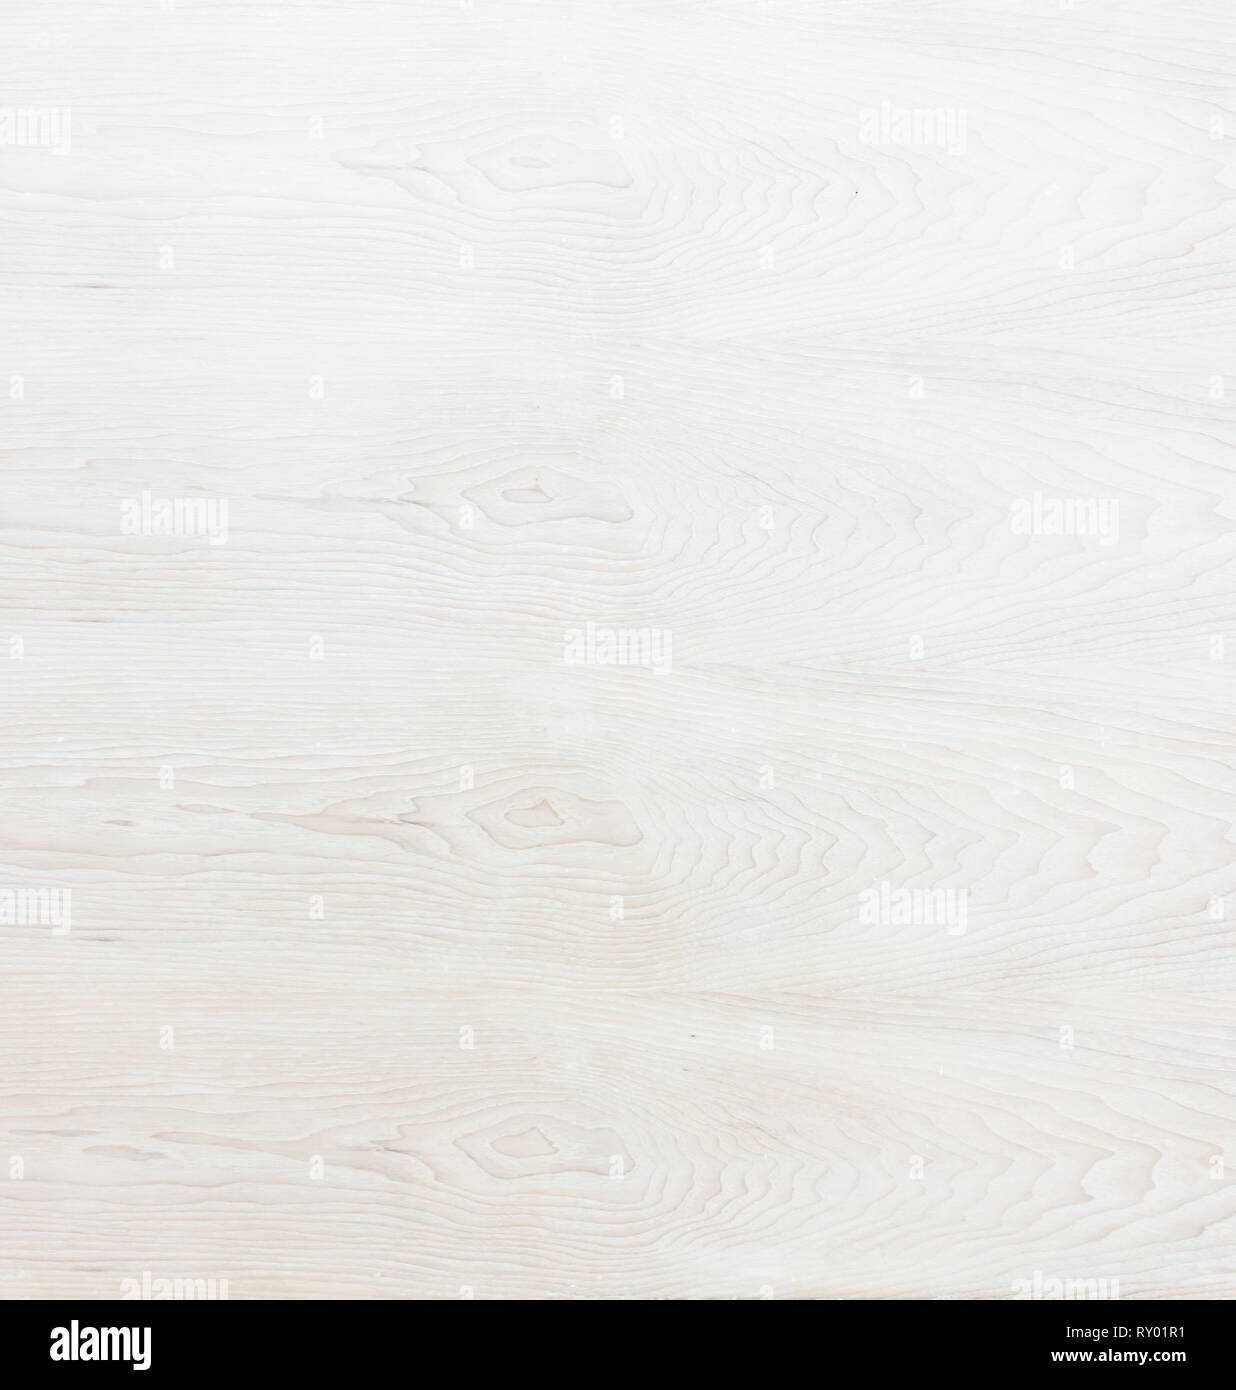 Table Top View Of Wood Texture In White Light Natural Color ...